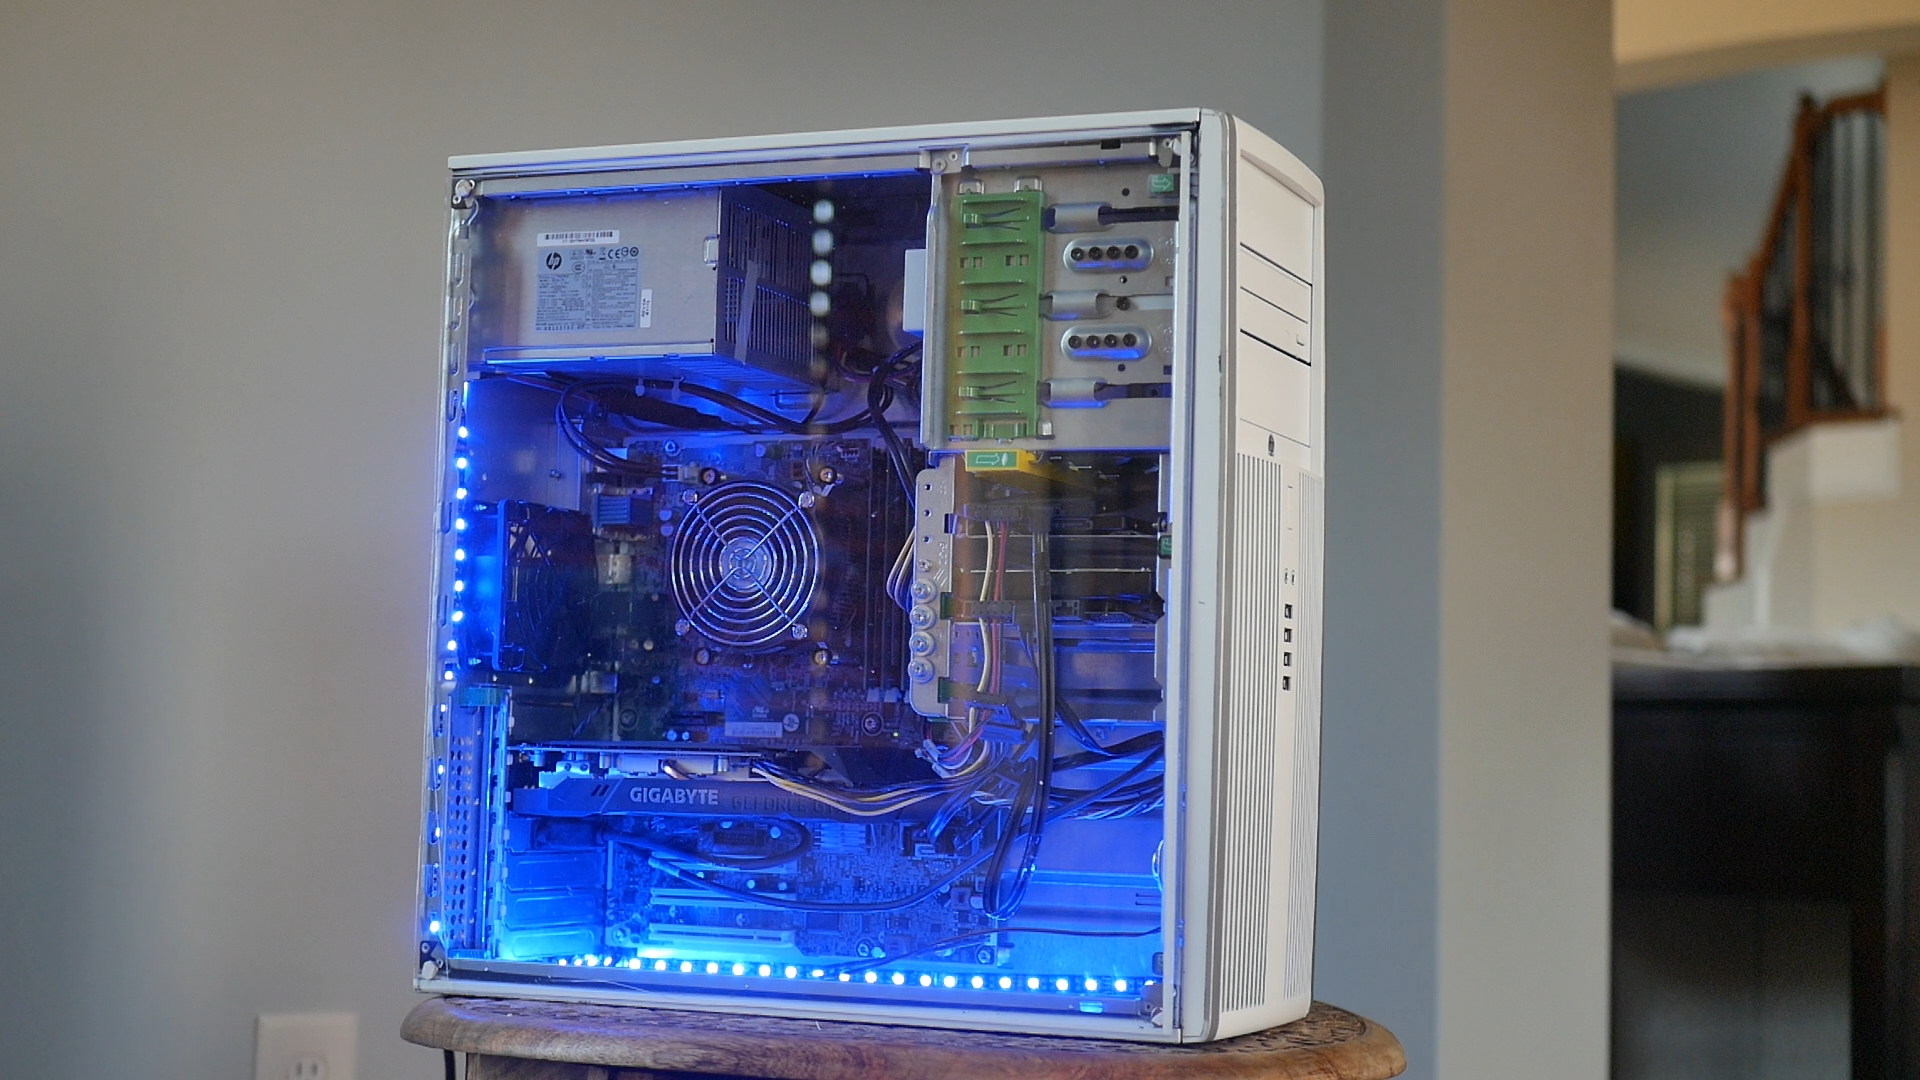 350 gaming pc that can play aaa games